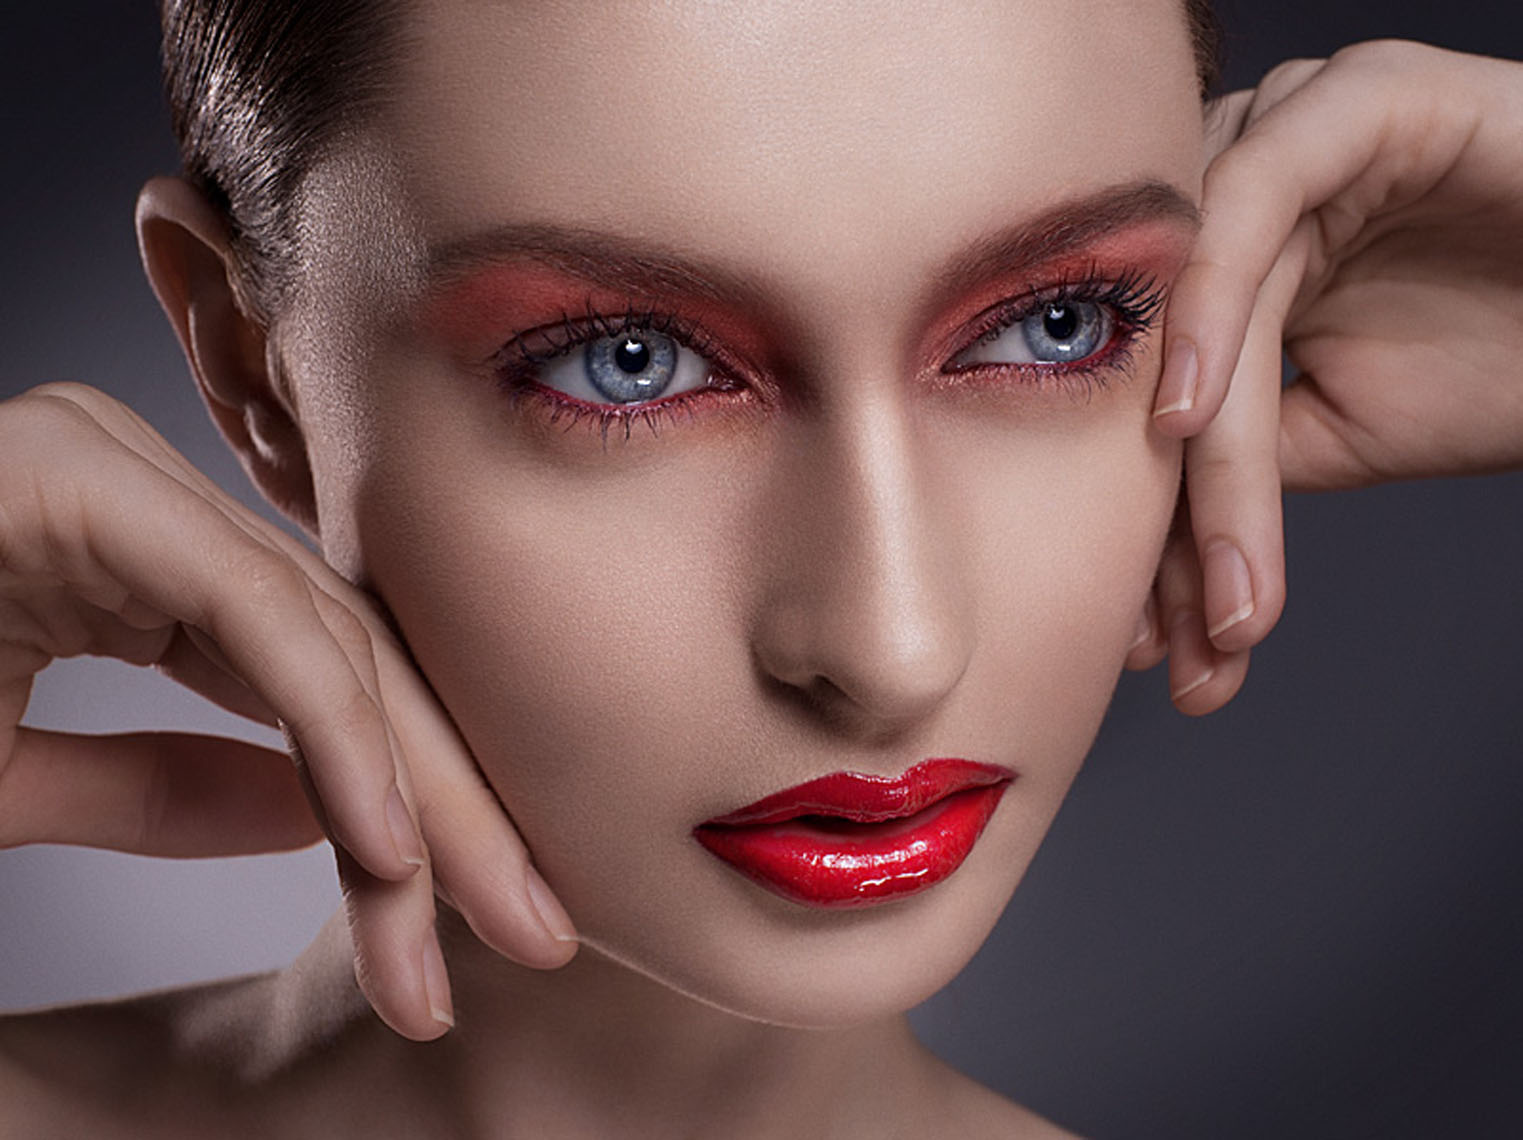 Red_Beauty_182